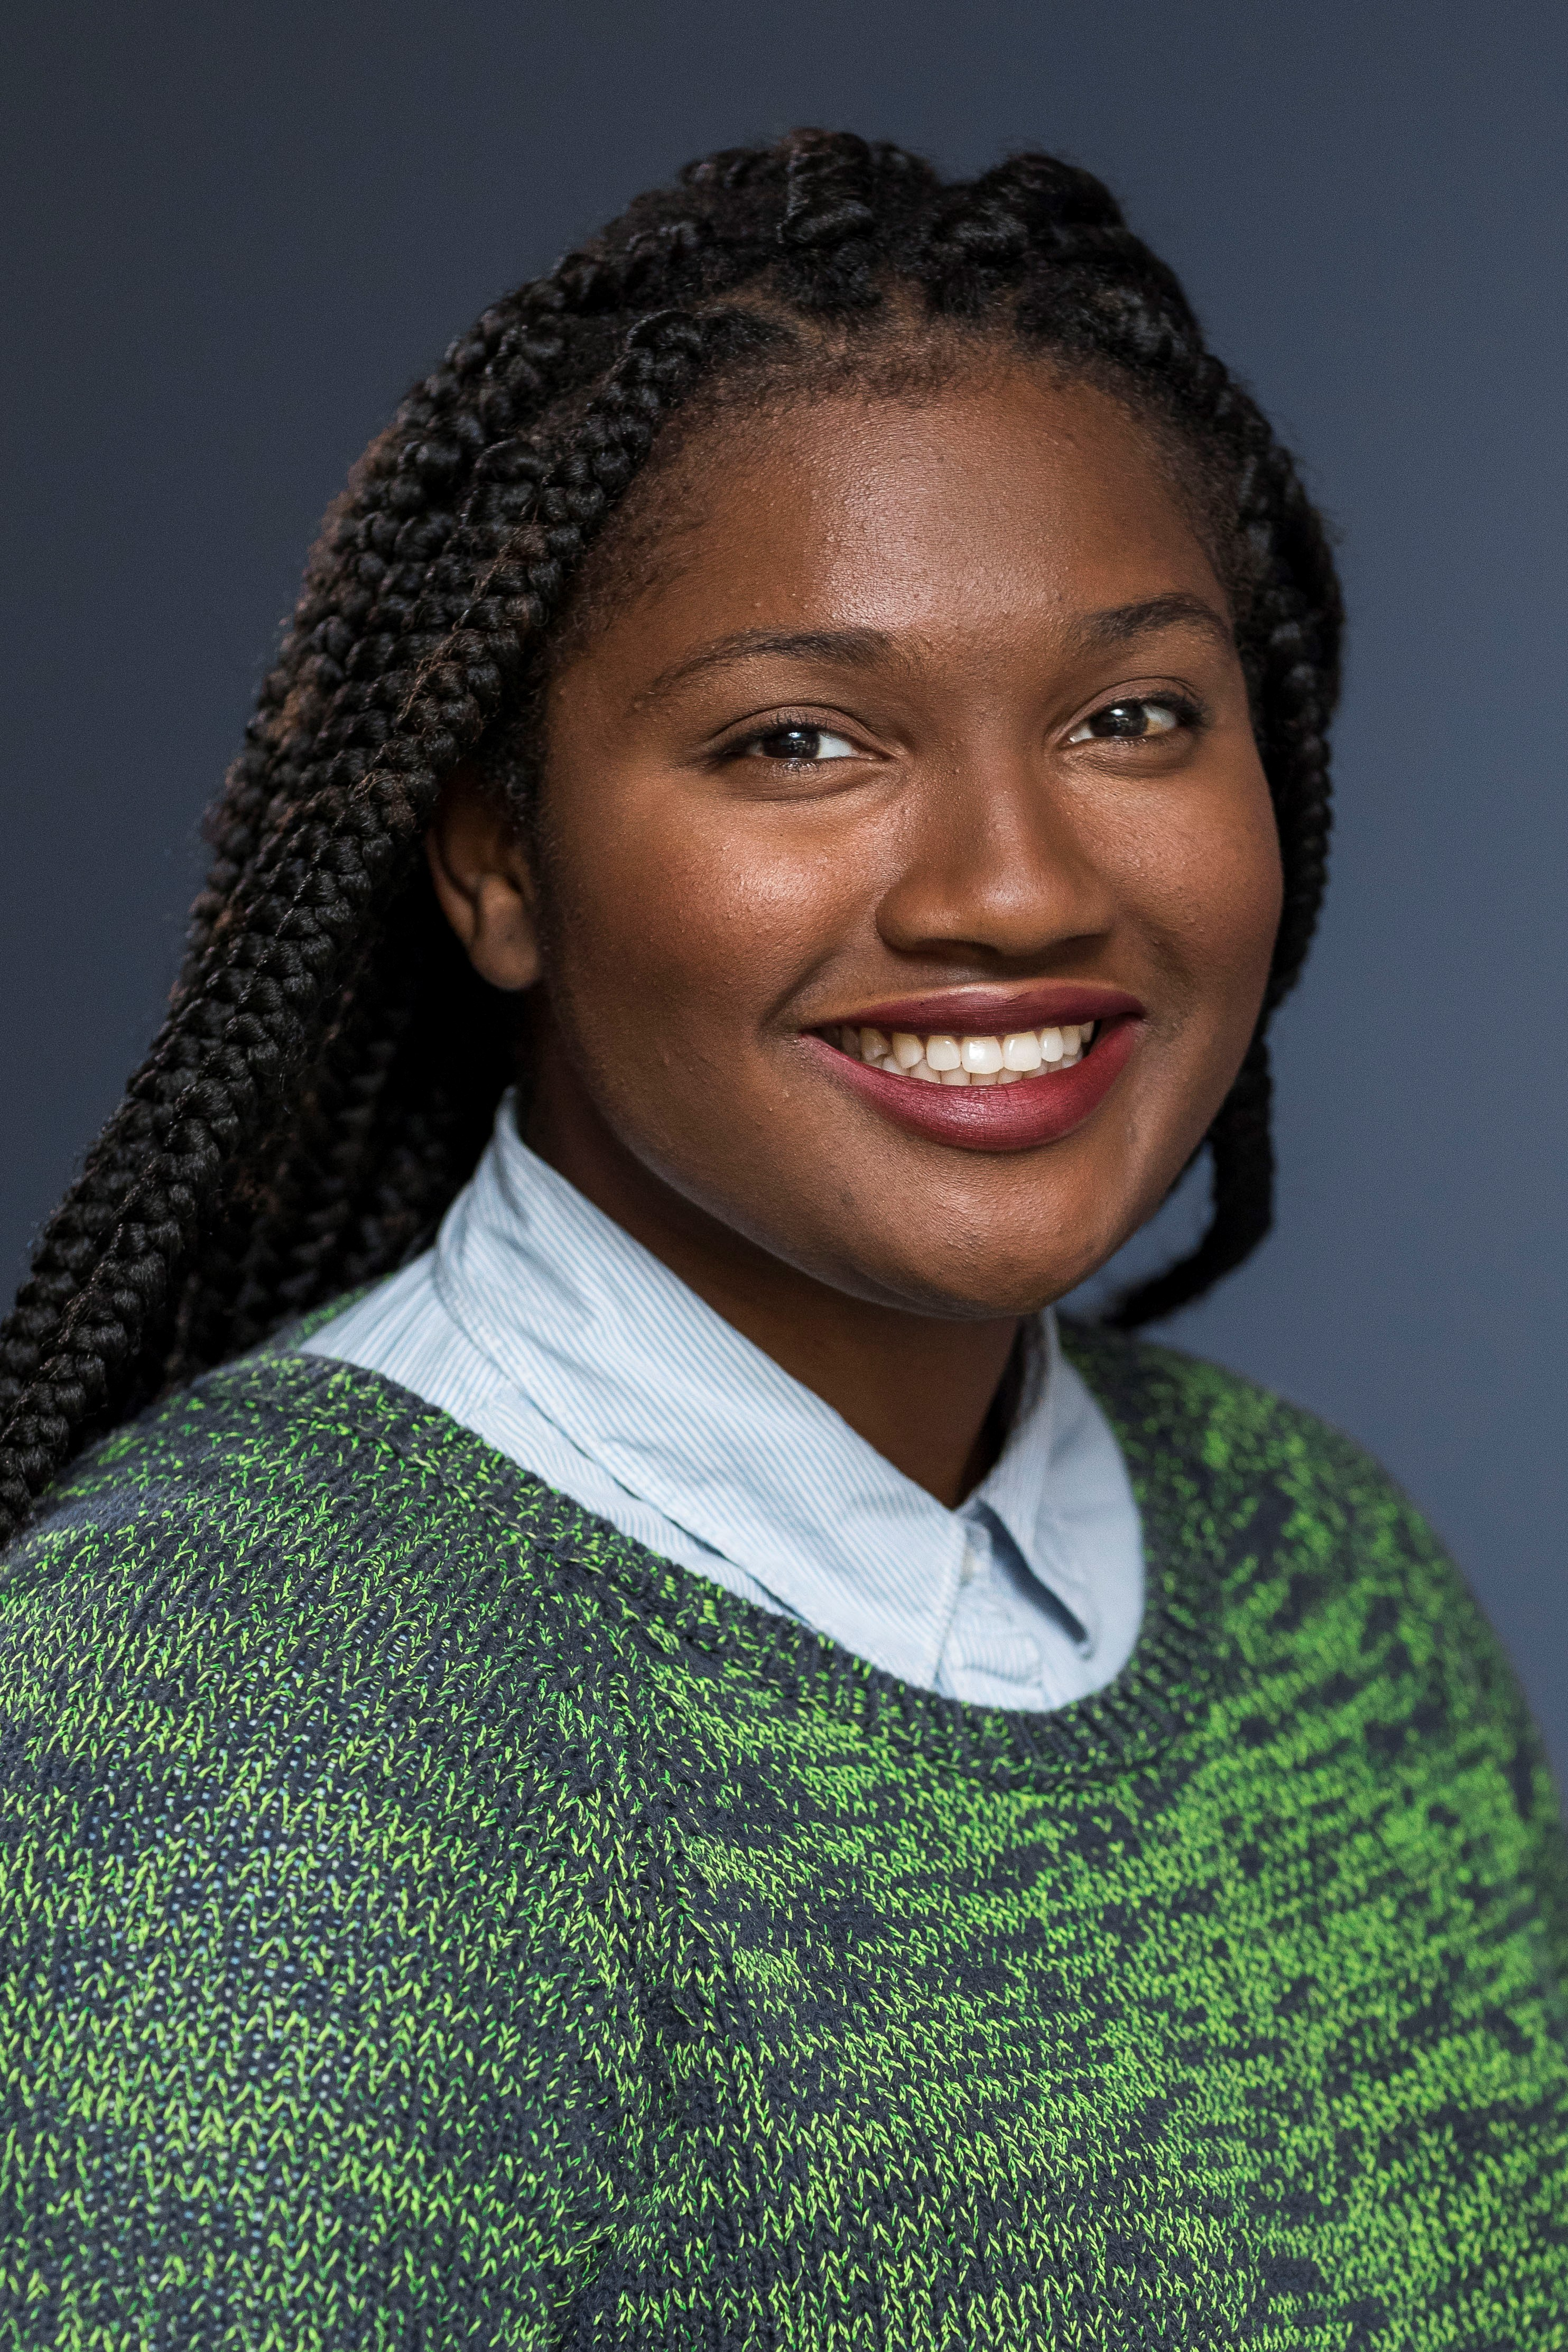 Headshot of De'Jonnae Boyd